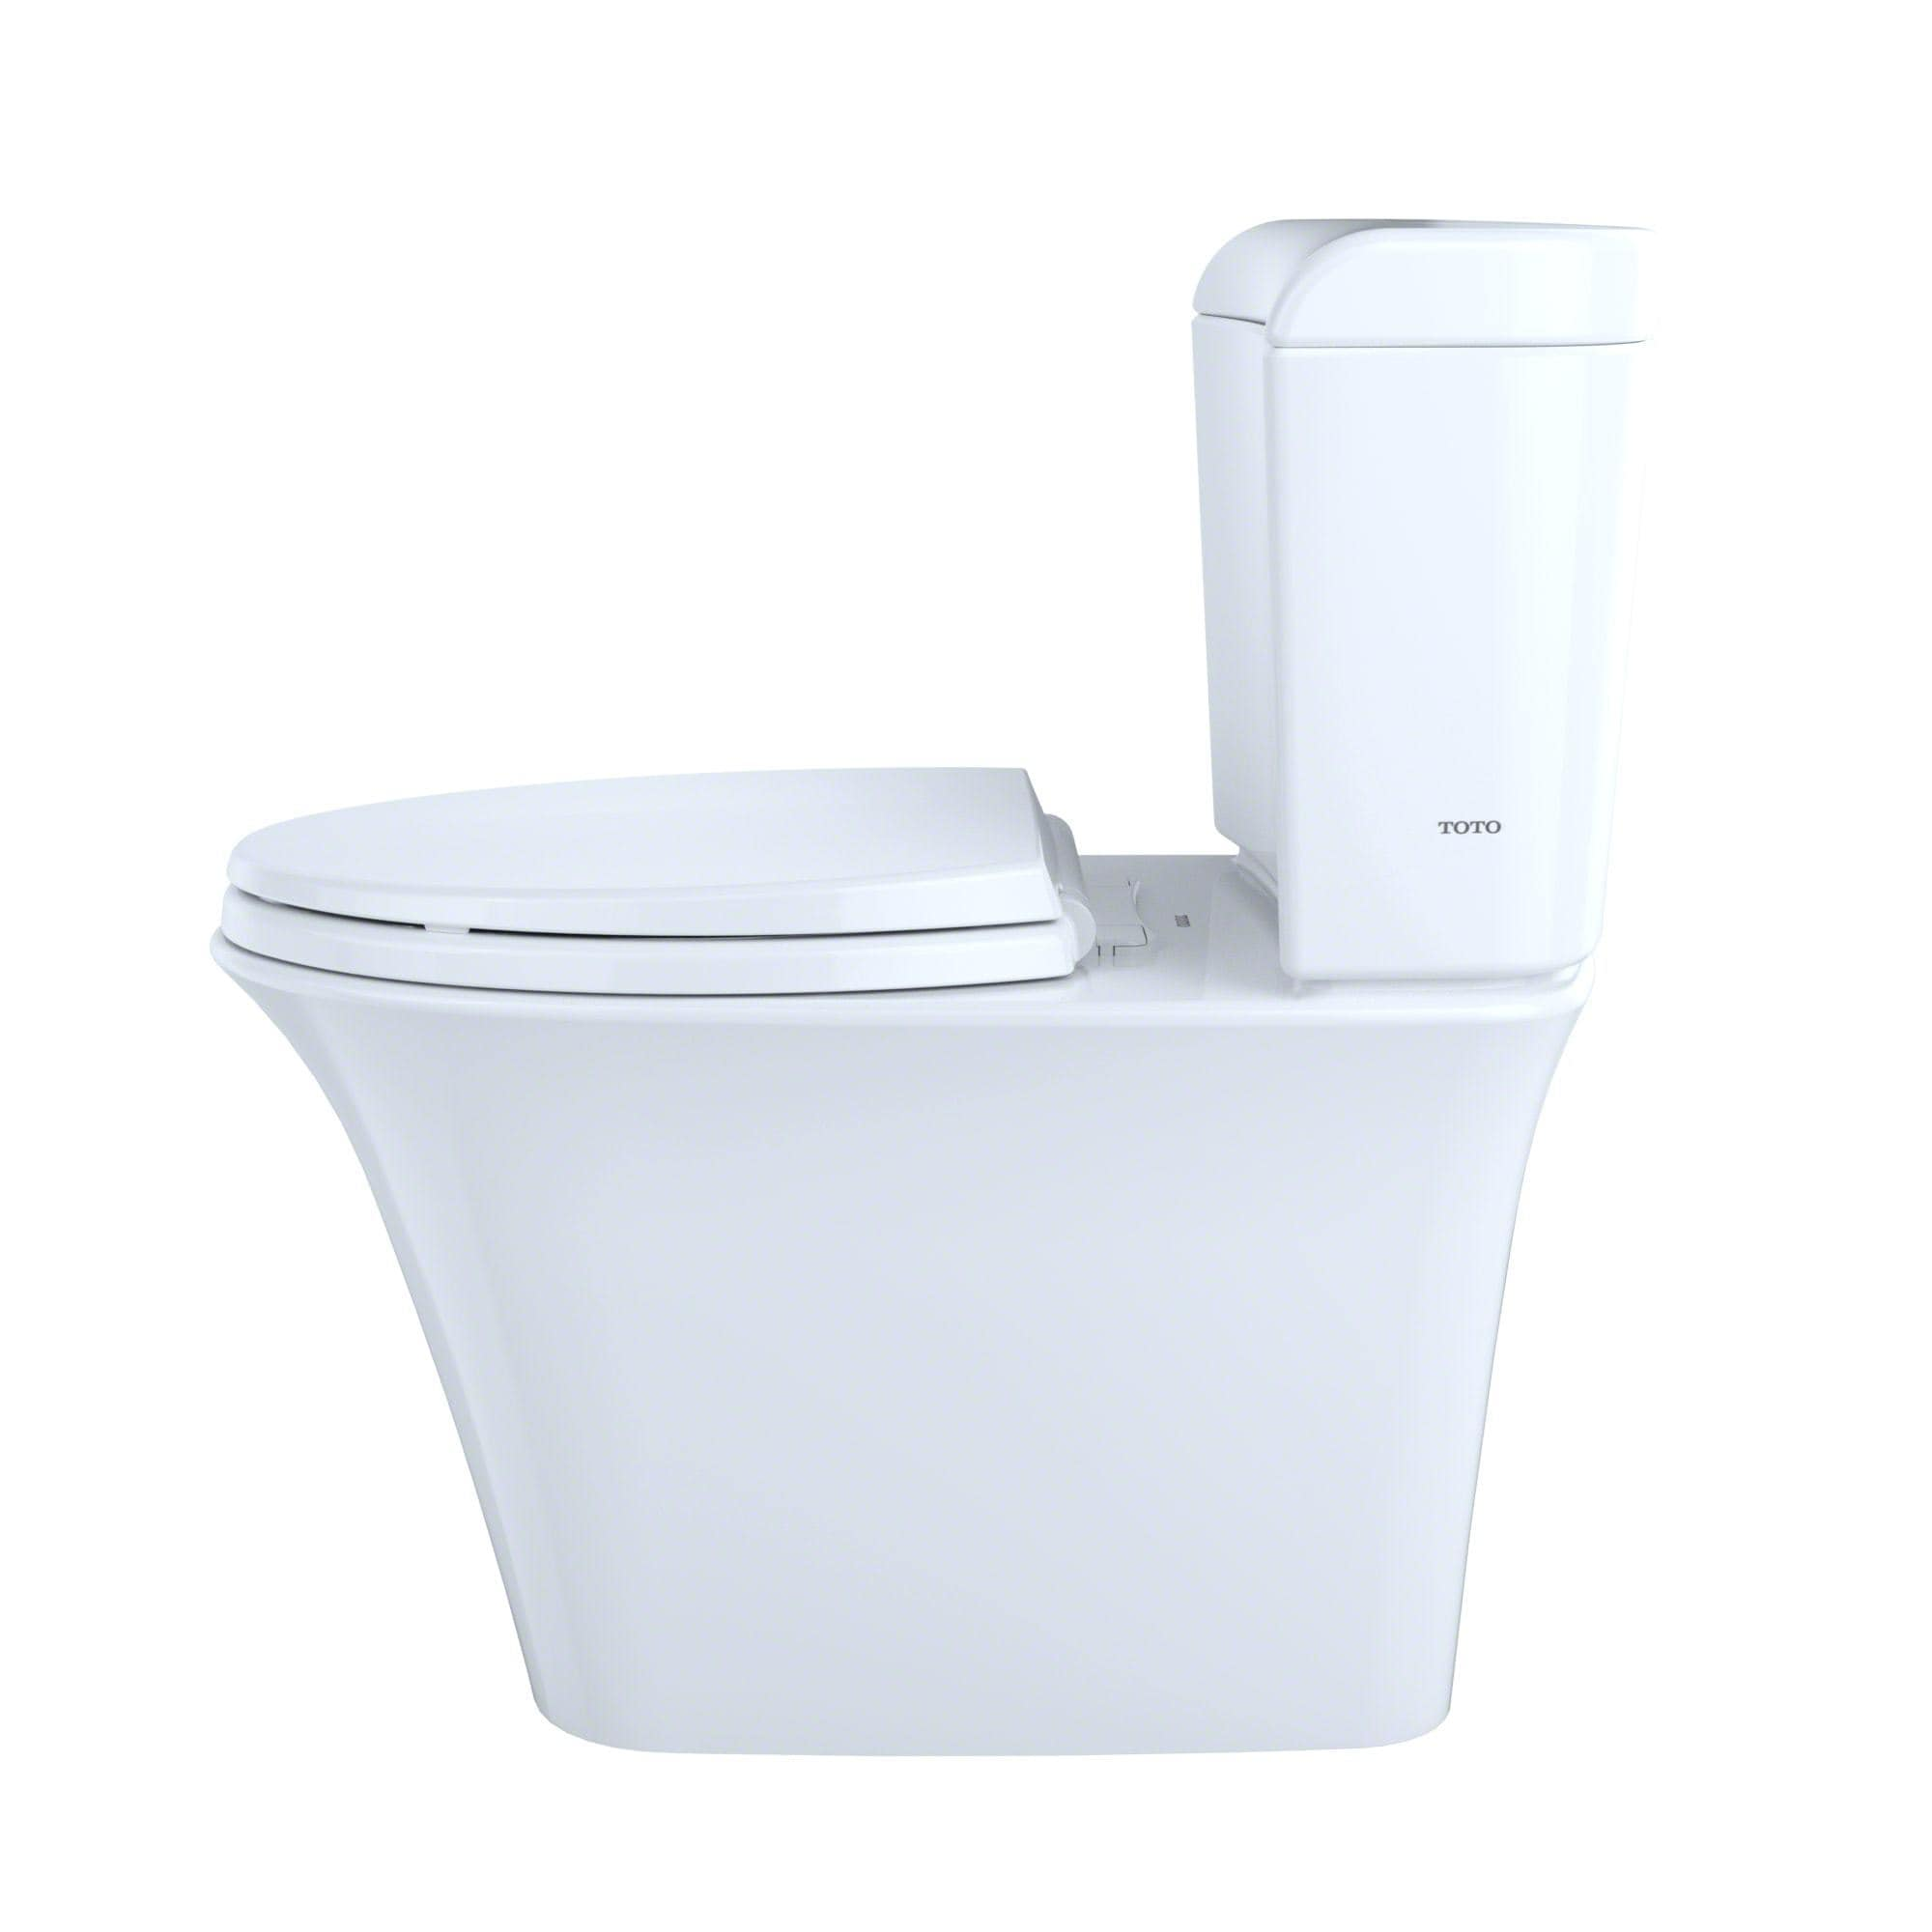 Toto Maris Toto Dual Flush Cotton White China Toilet - Free Shipping ...